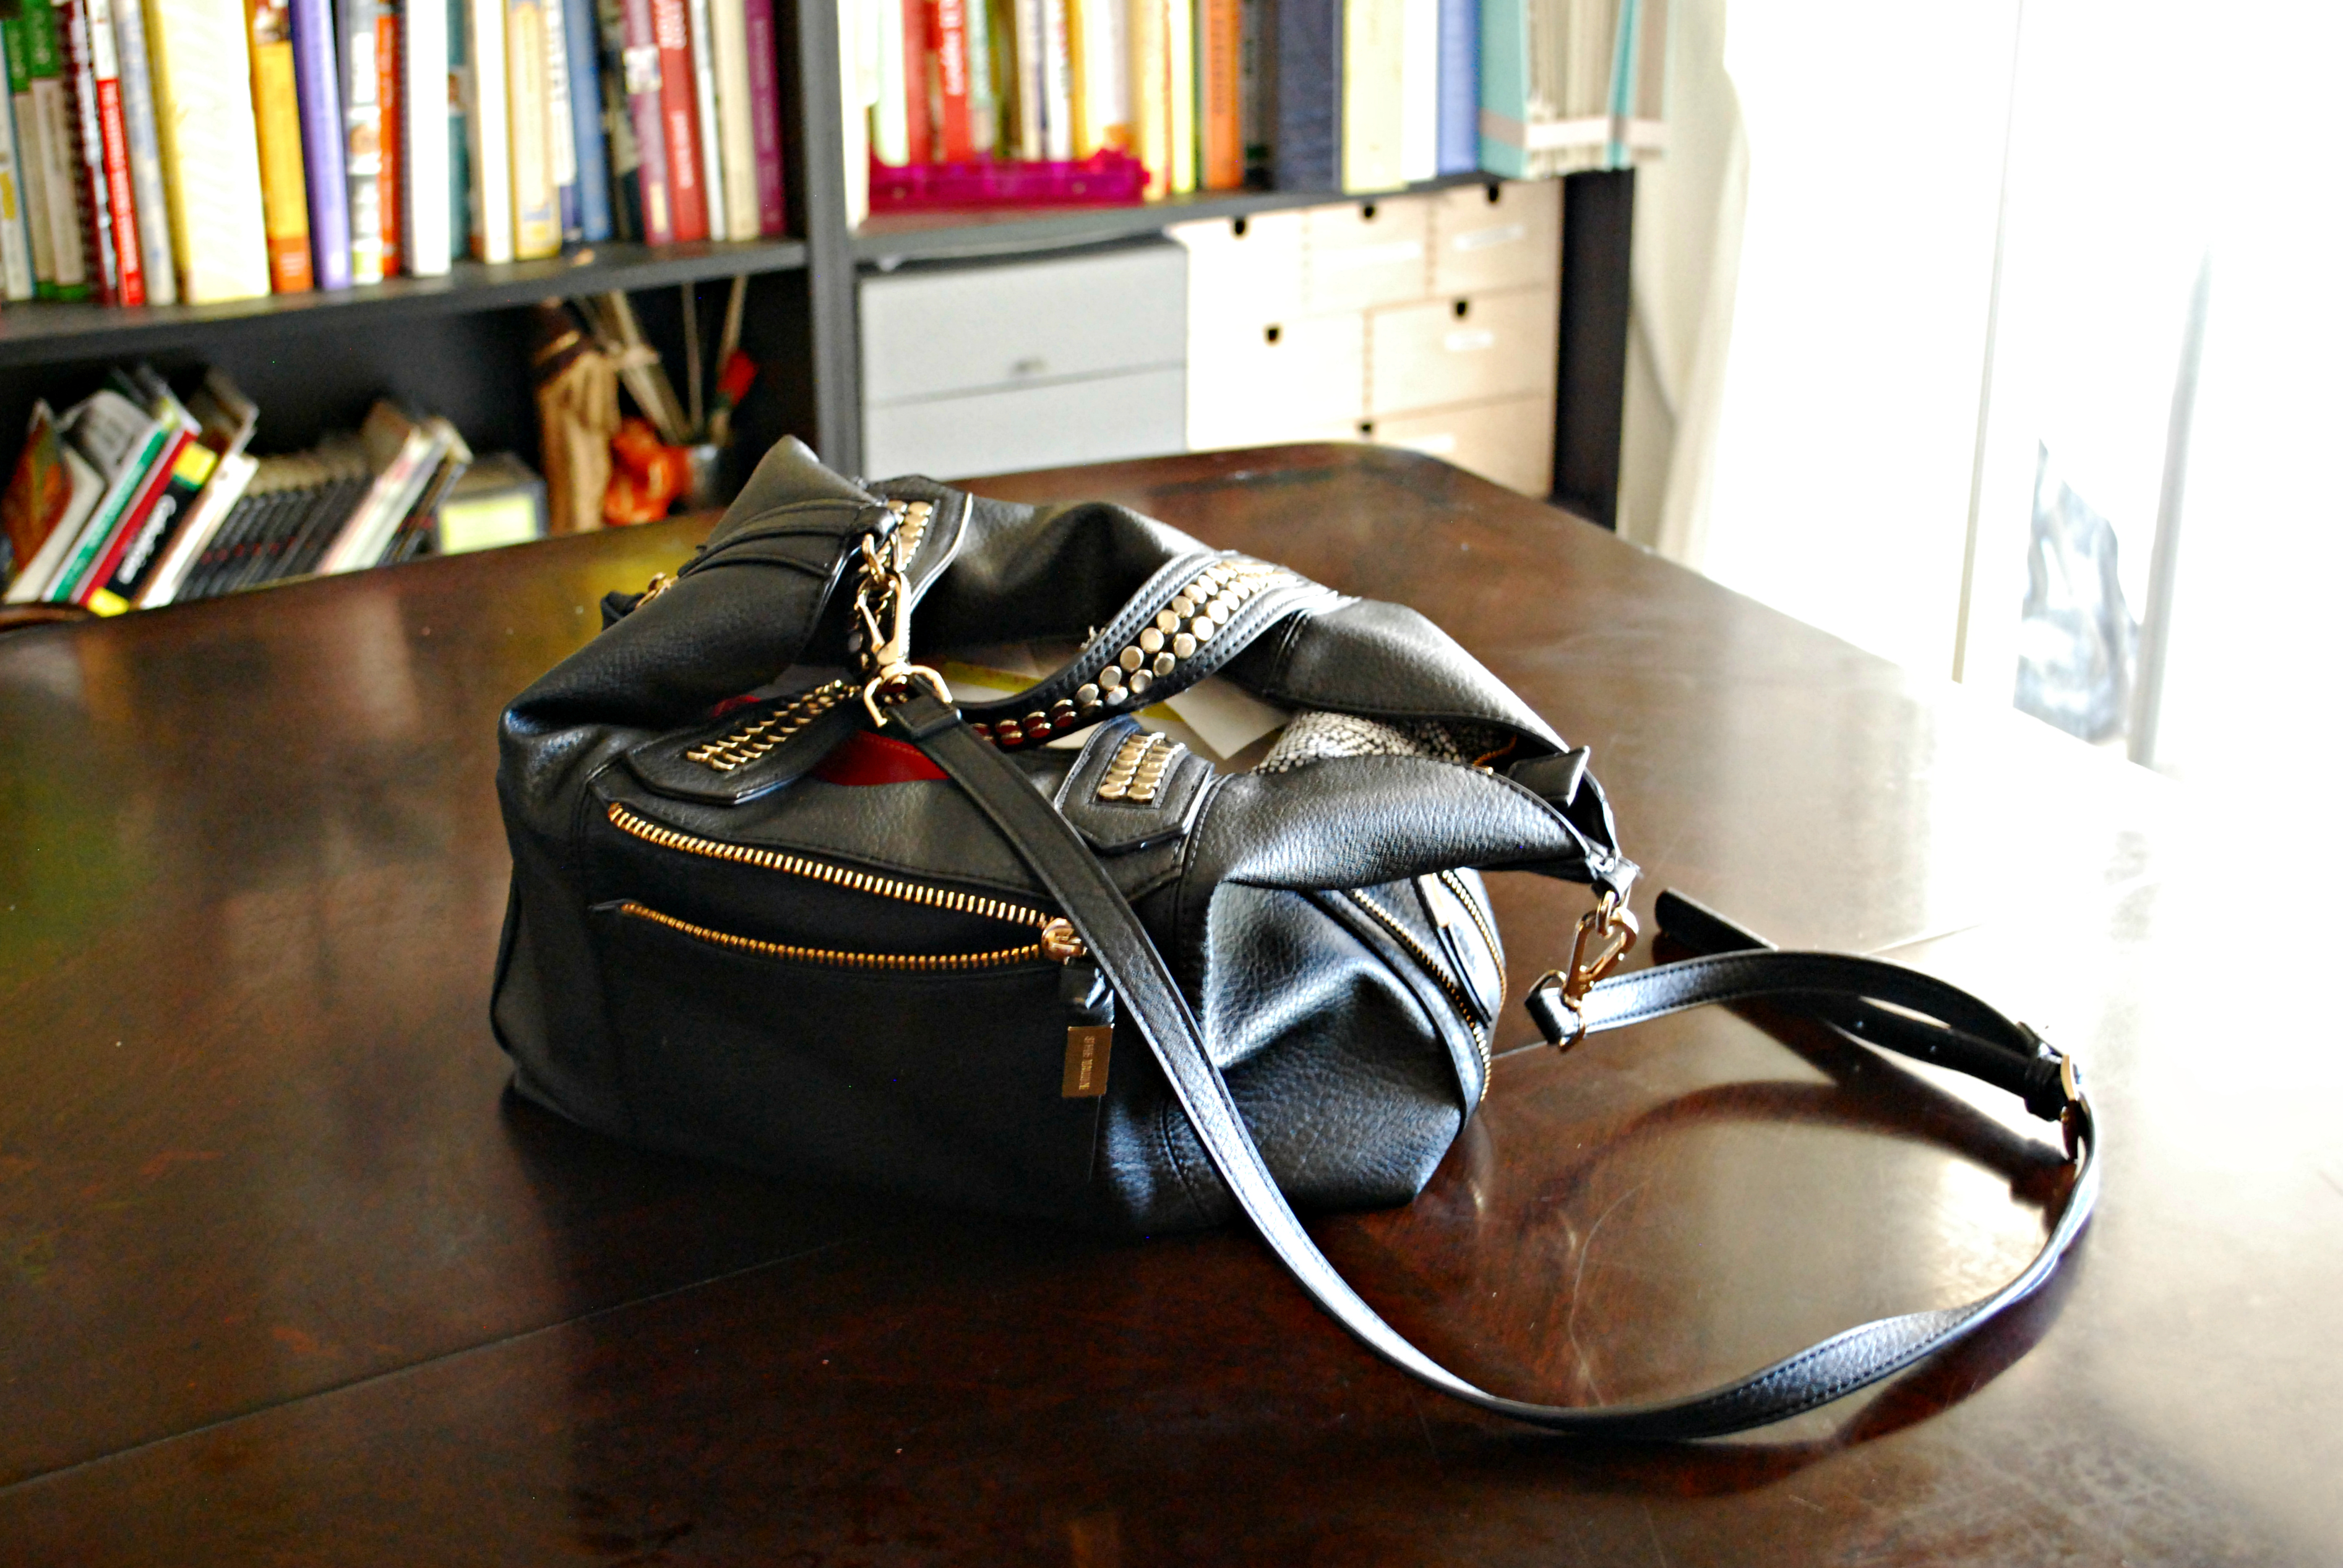 The Average Handbag Weighs 67 Pounds